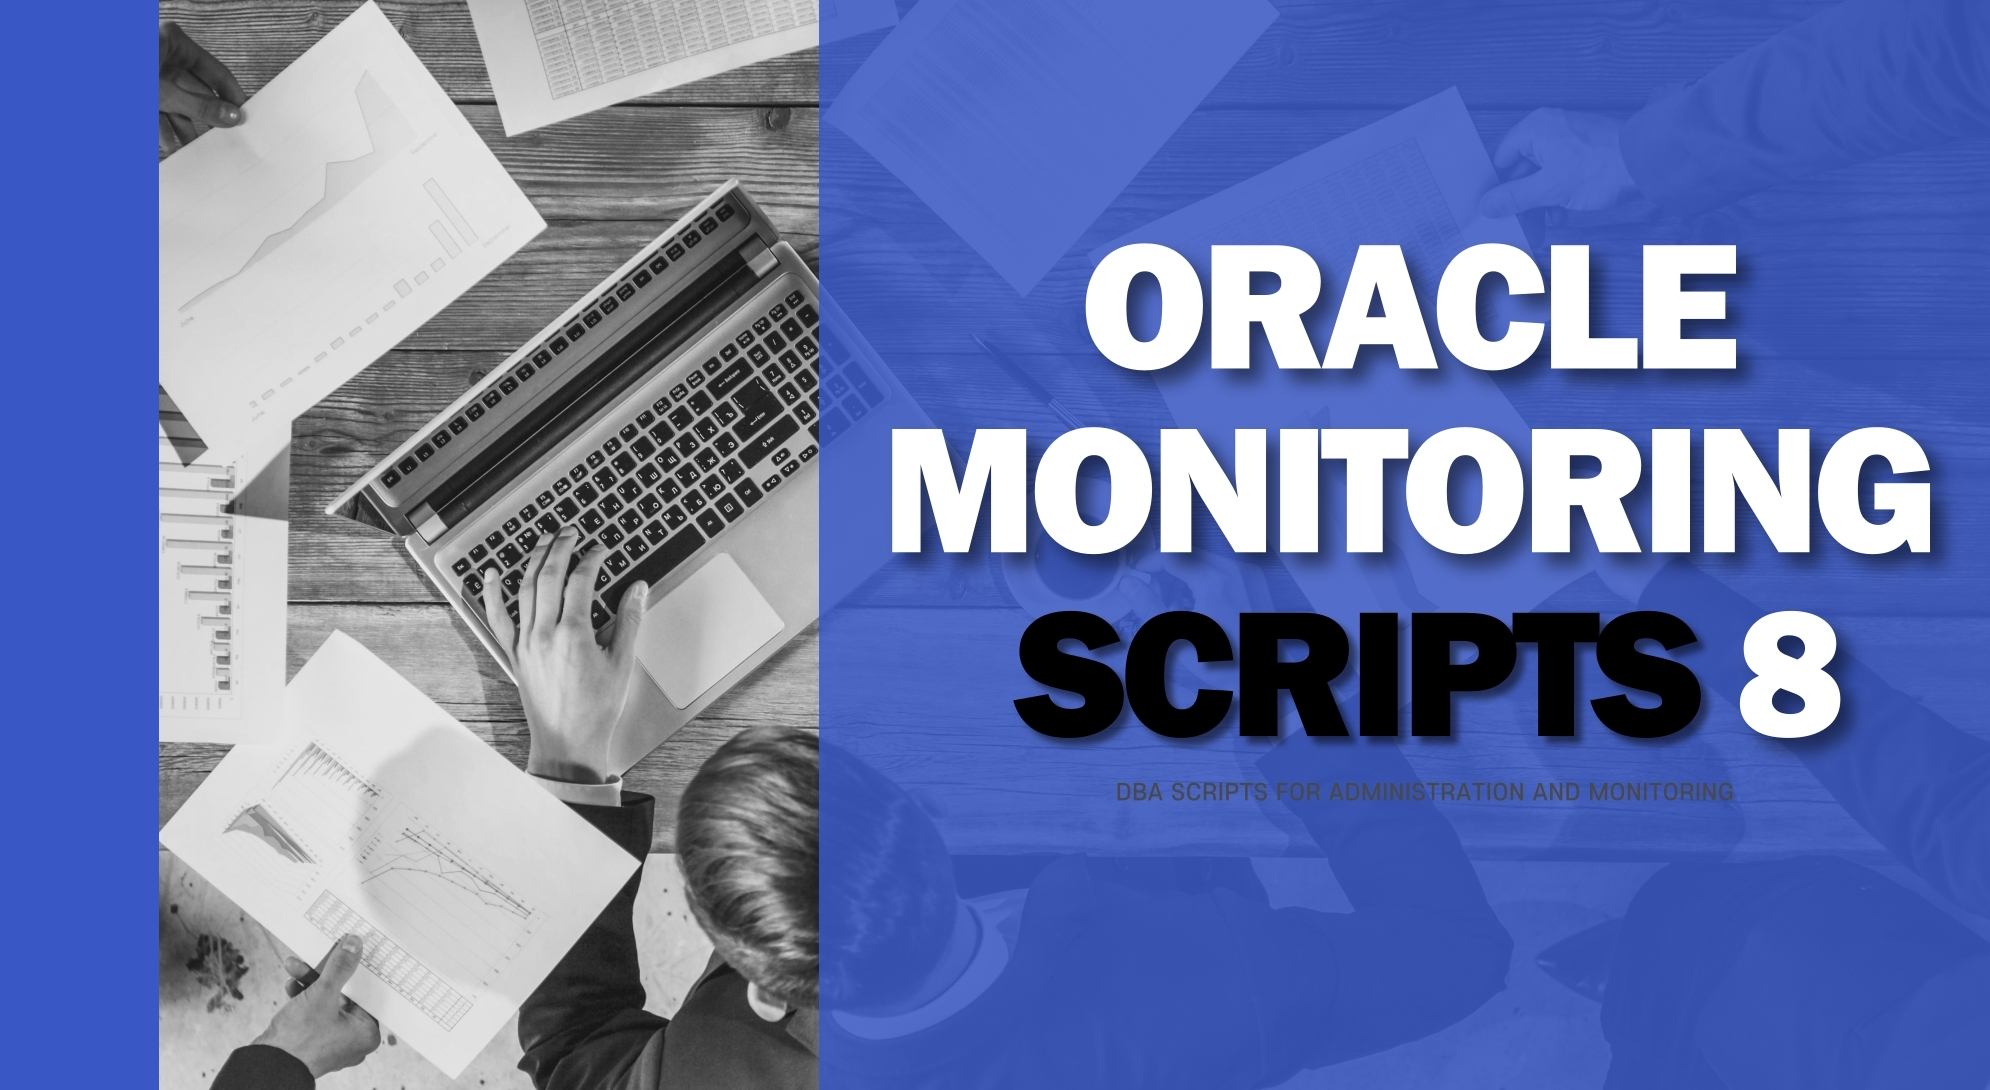 Oracle Monitoring Scripts 8